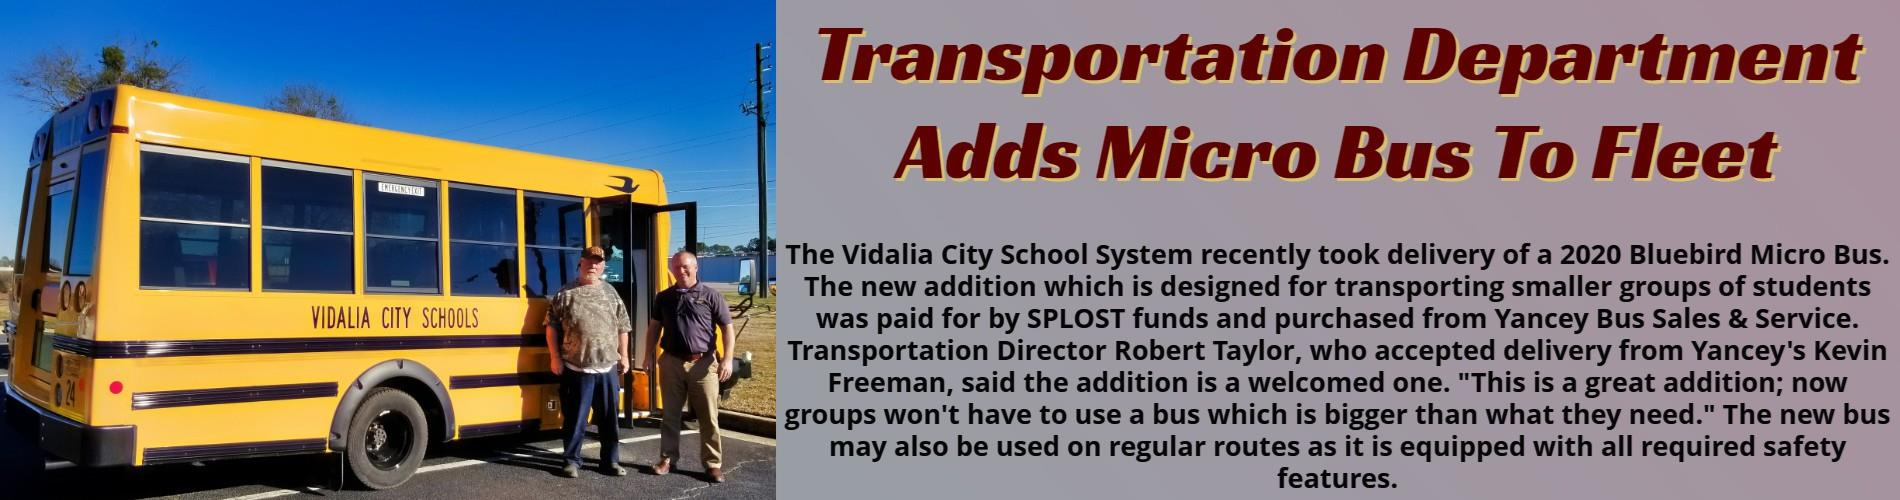 New Micro Bus Delivered to Transportation Department